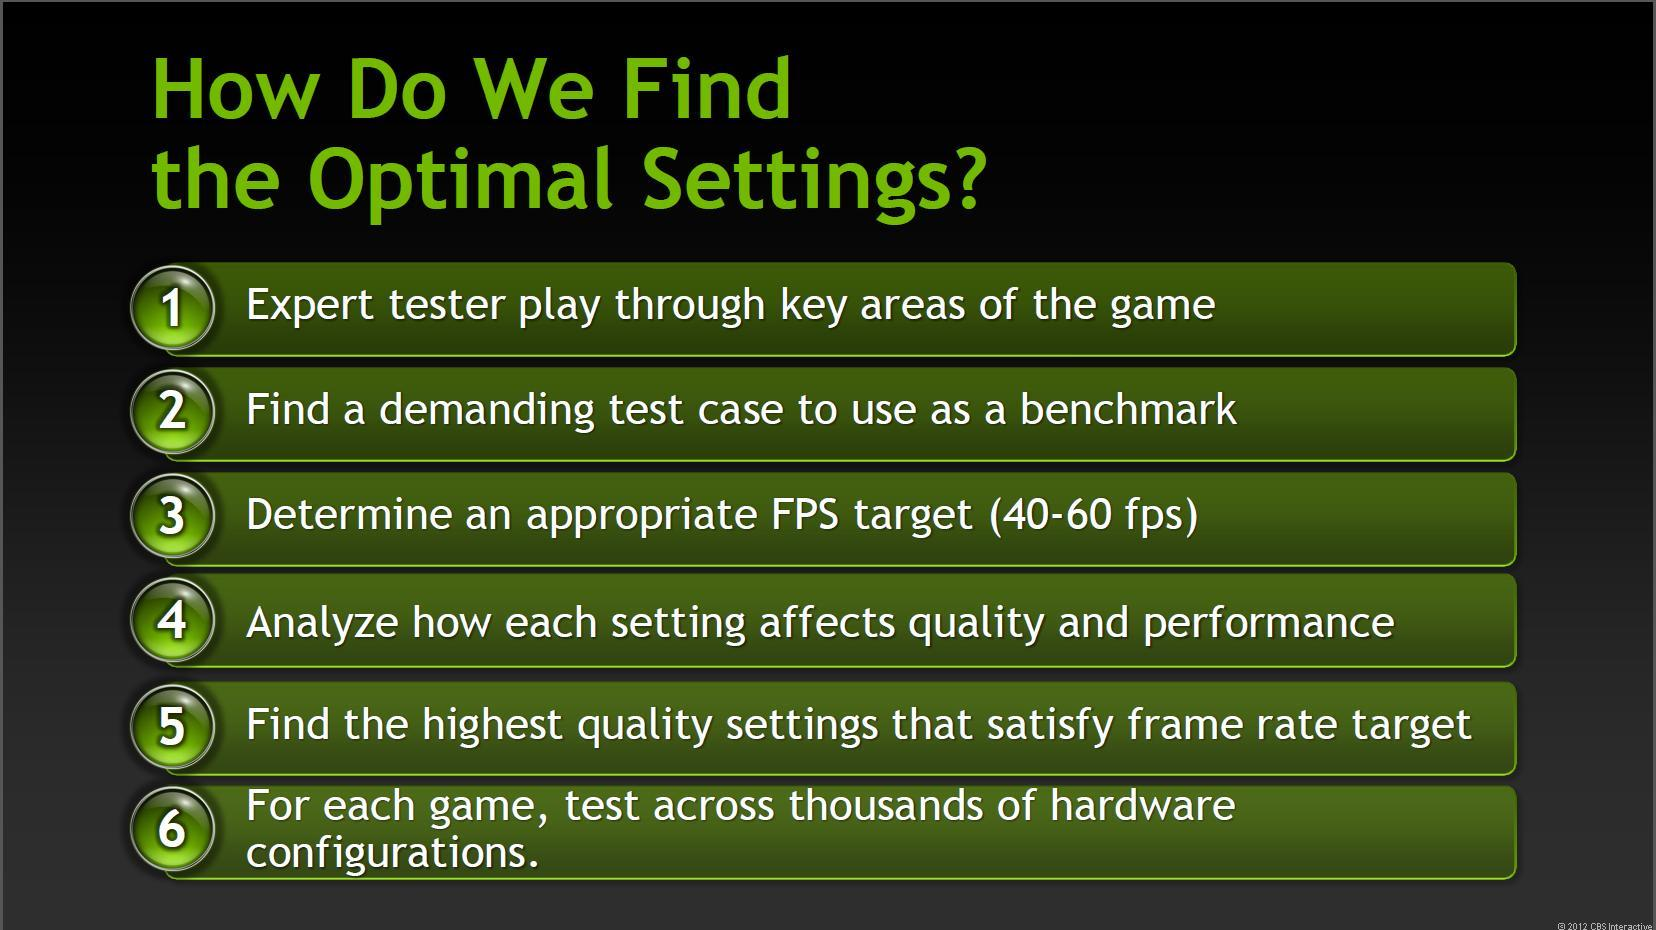 Nvidia describes its process for determining the best game settings for a given hardware configuration.